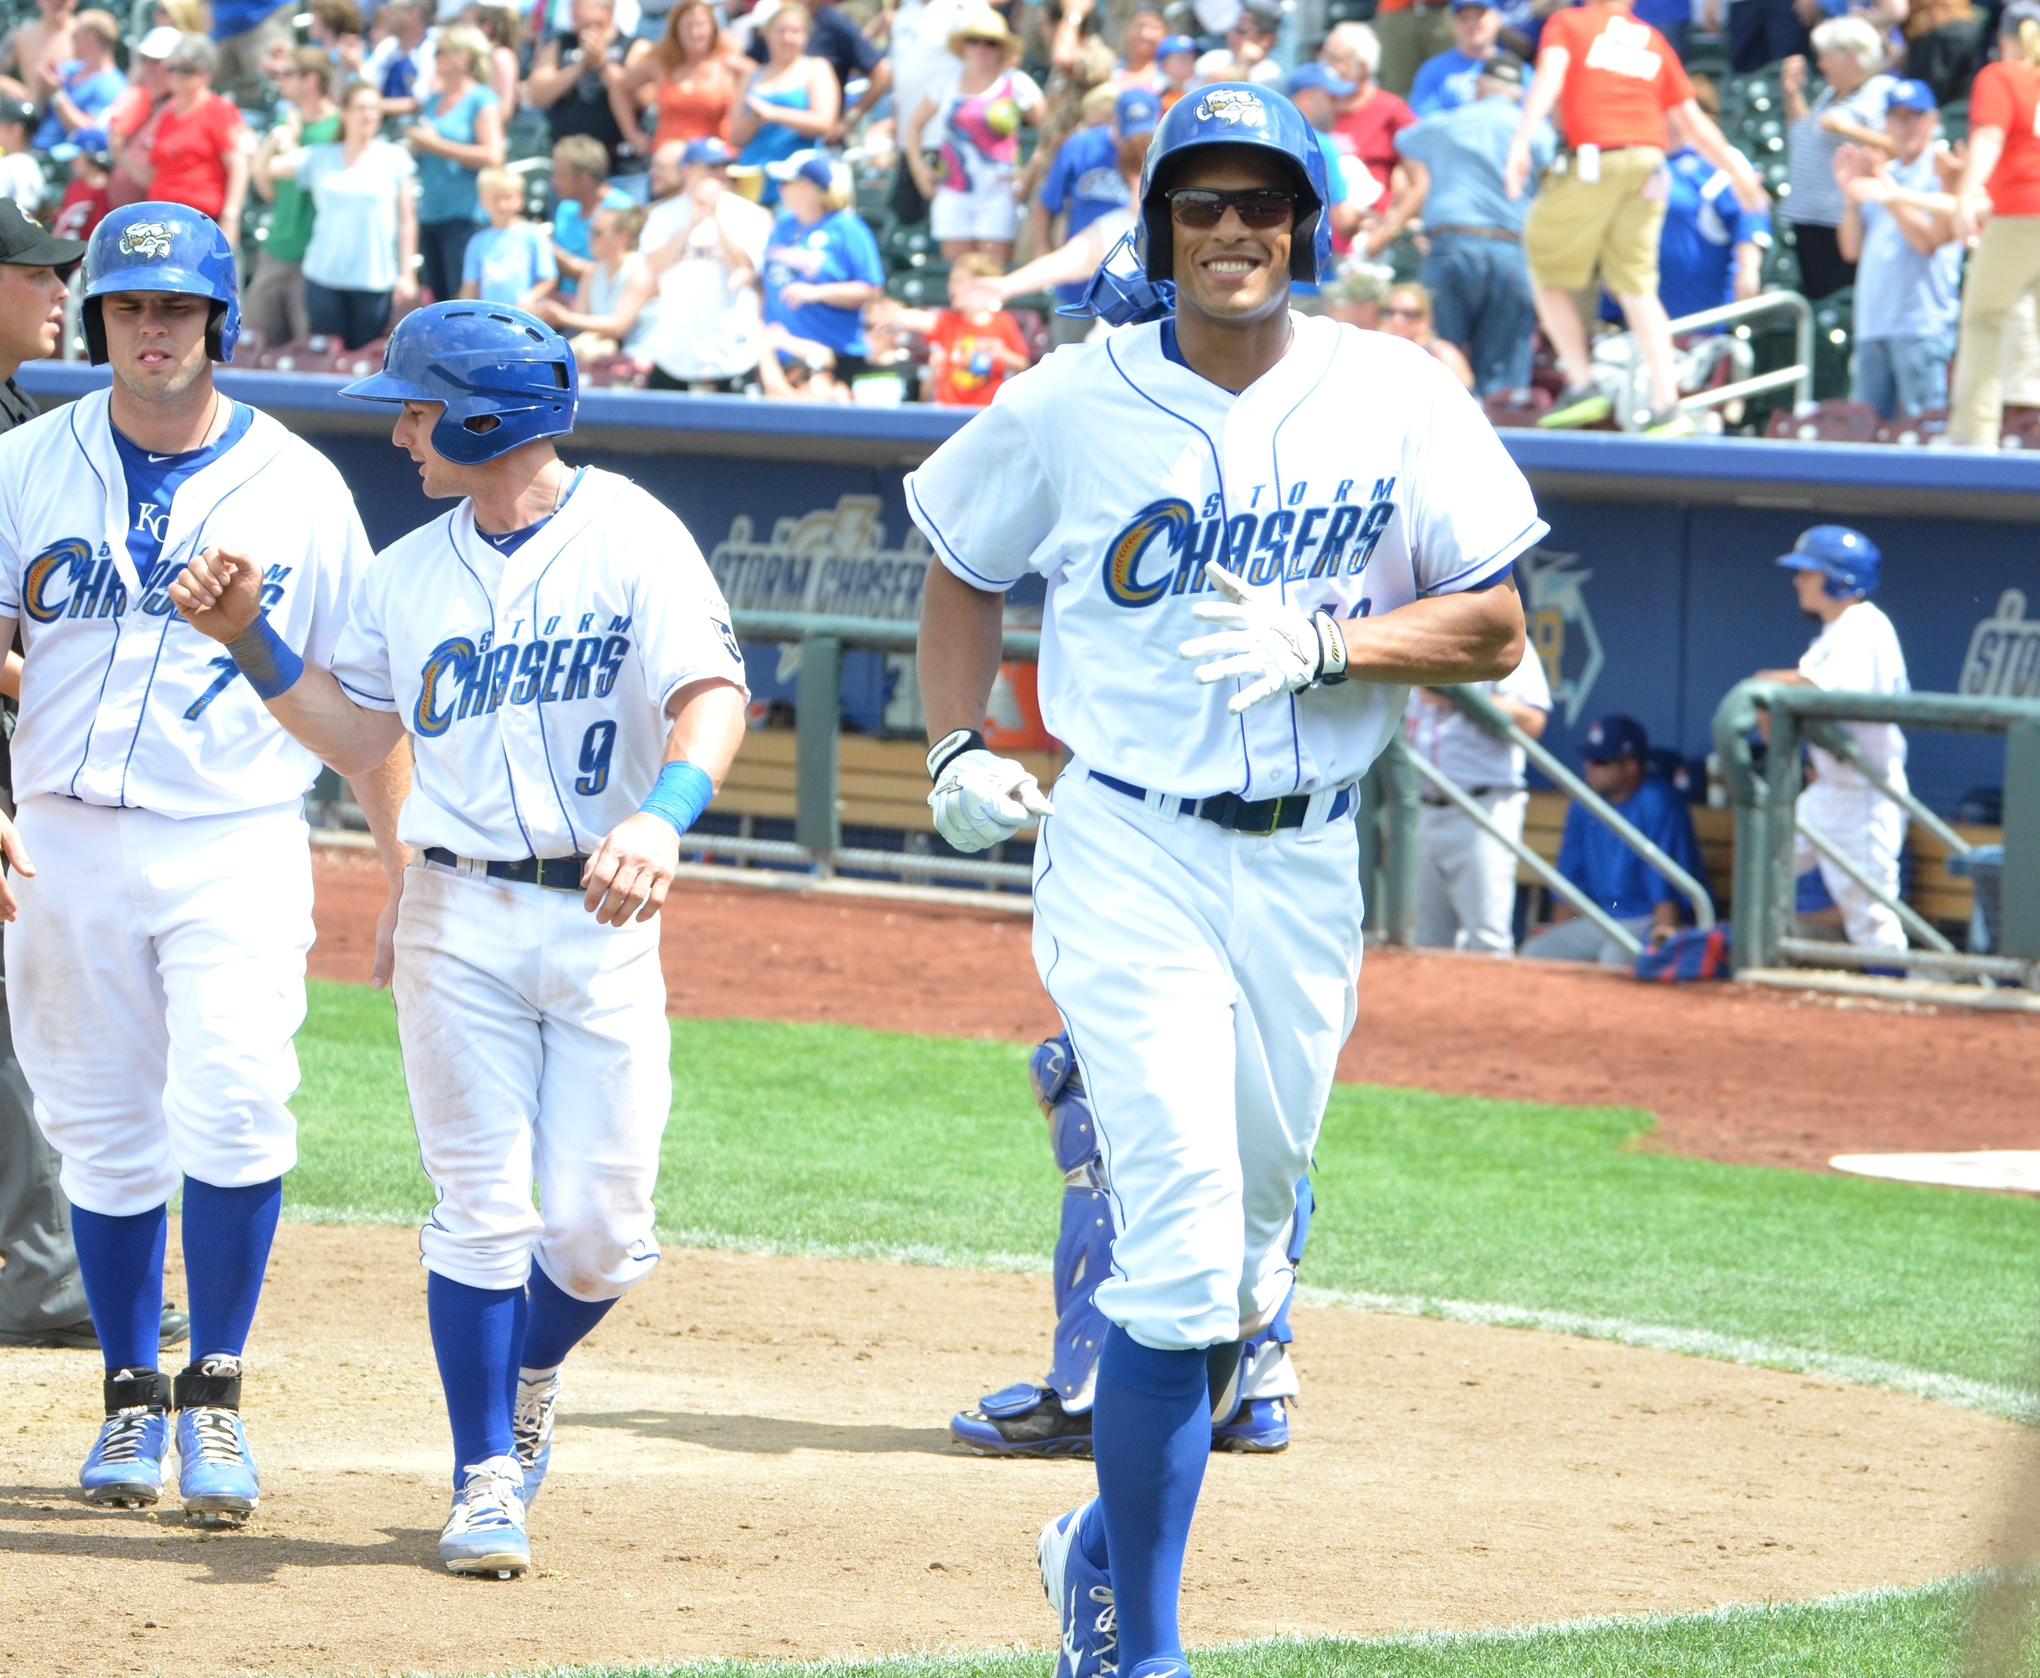 Justin Maxwell is doing just fine in Omaha. This is him after hitting a go-ahead home run on Monday